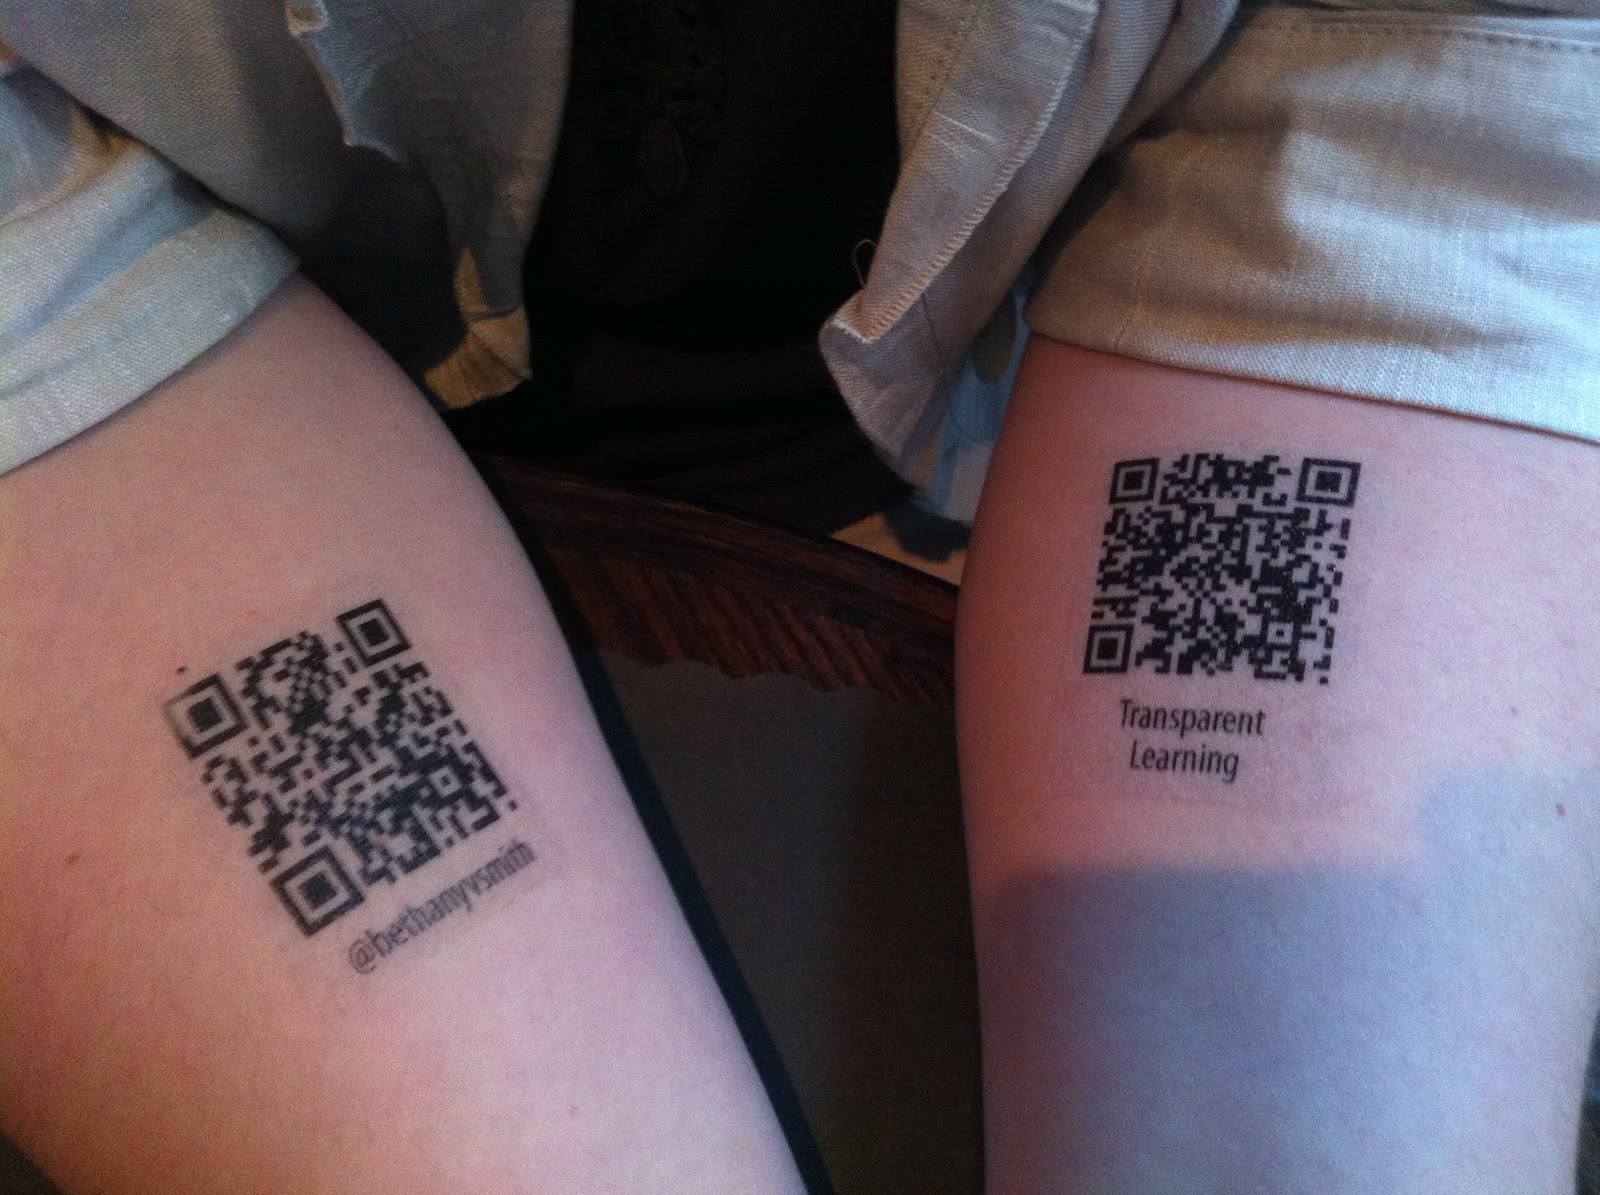 Transparent Learning: The Girl with the QR Code Tattoo